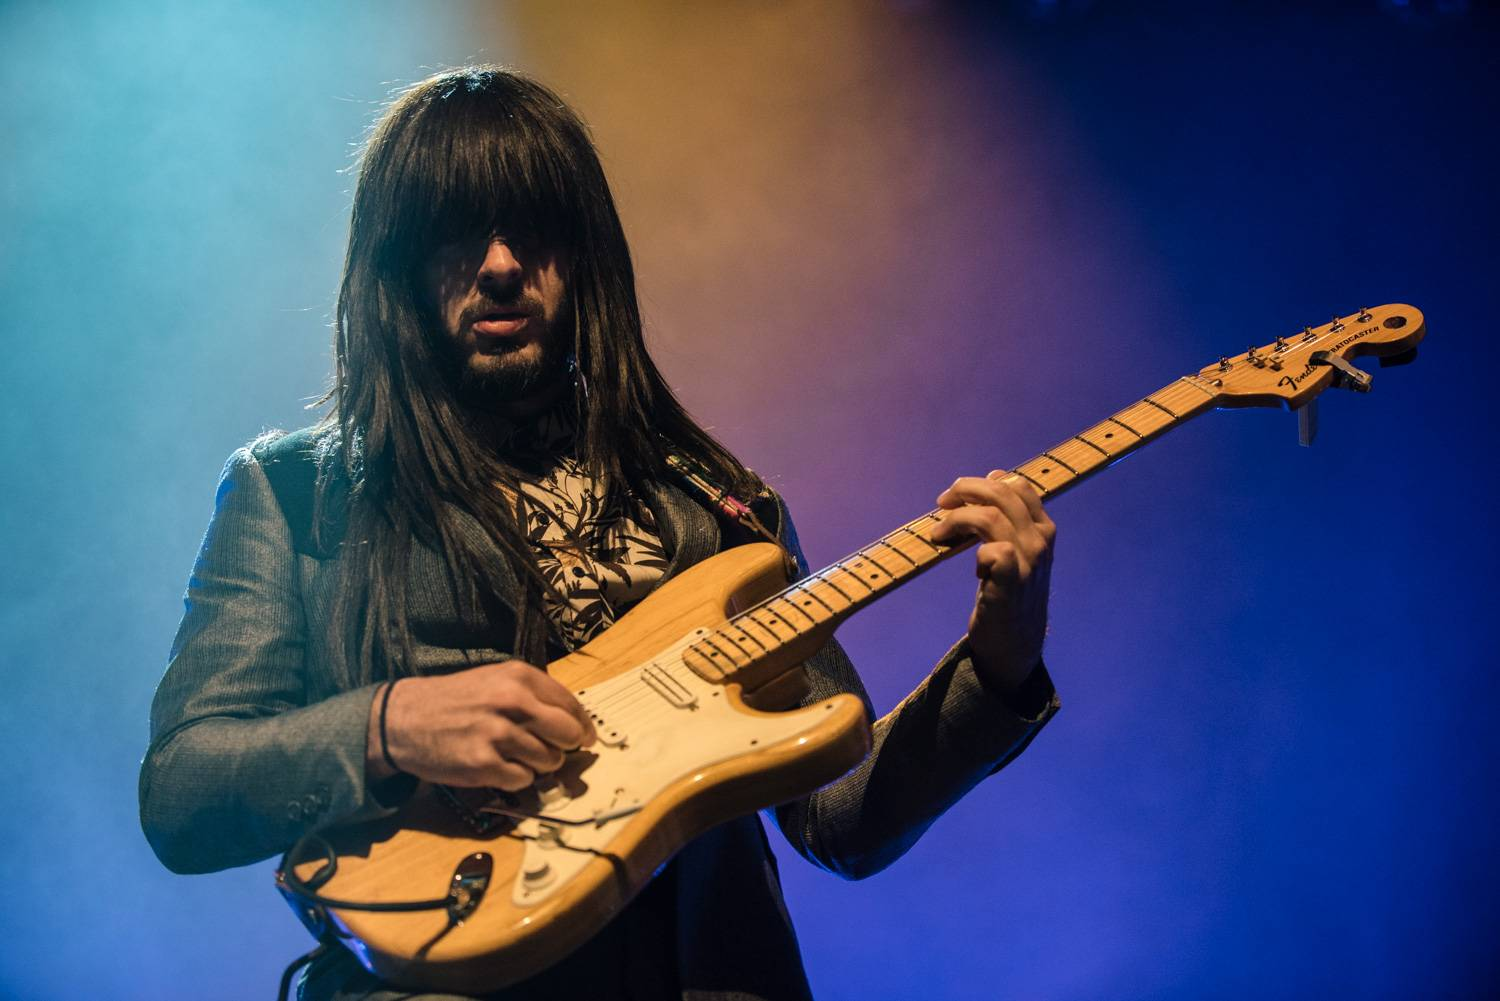 Khruangbin at the Vogue Theatre, Vancouver, Nov 18 2018. Pavel Boiko photo.